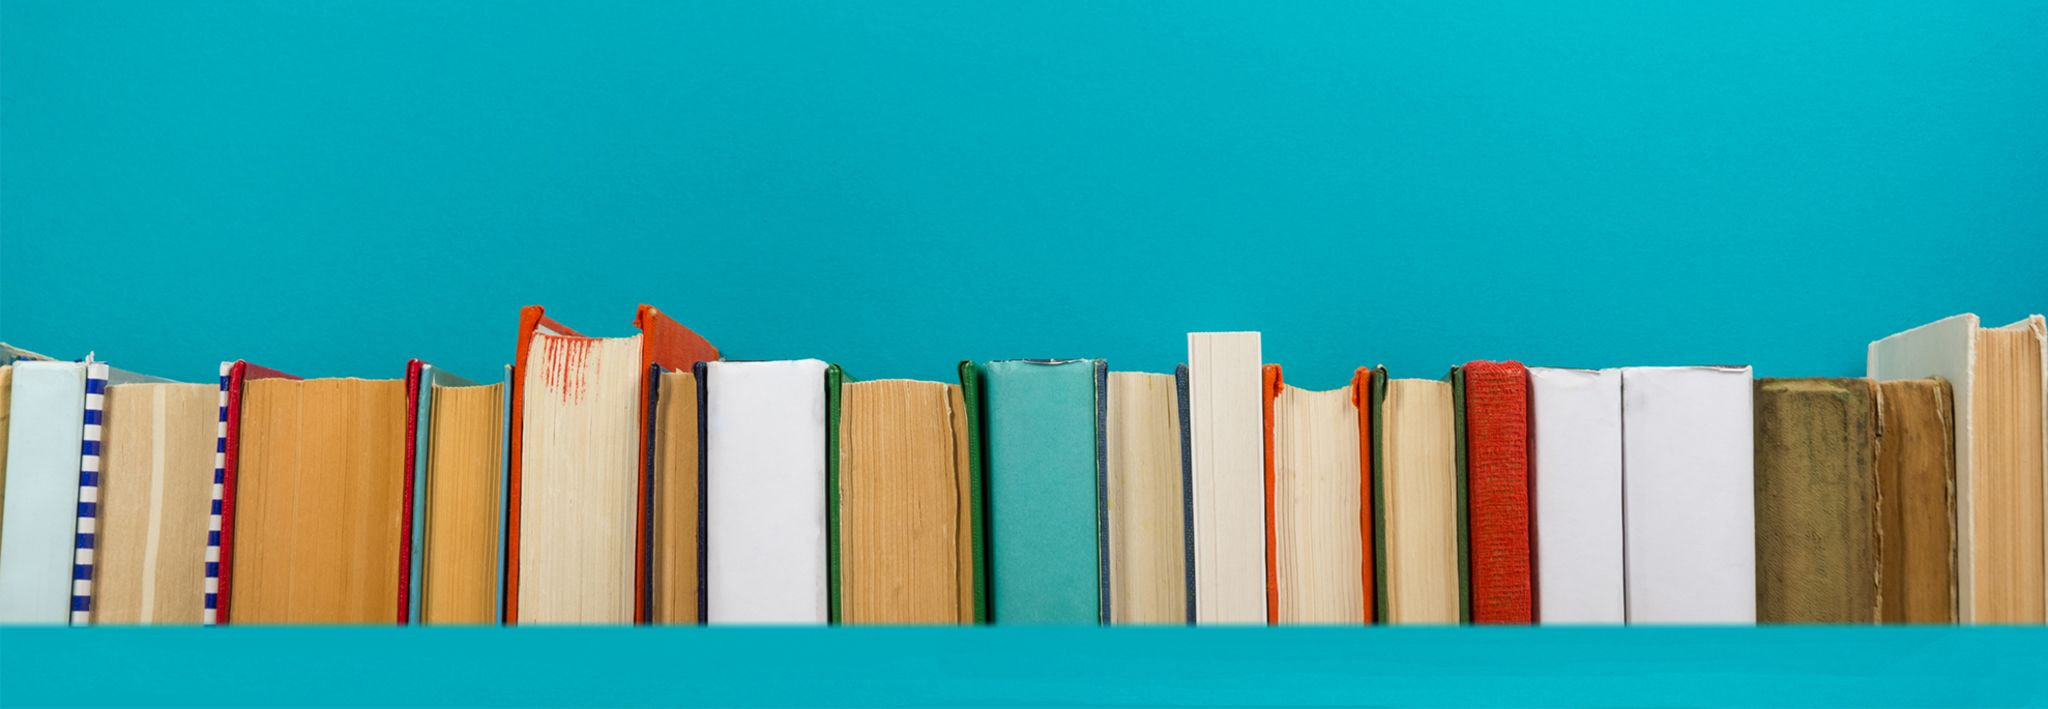 A group of colorful books is sitting on a shelf in a library.